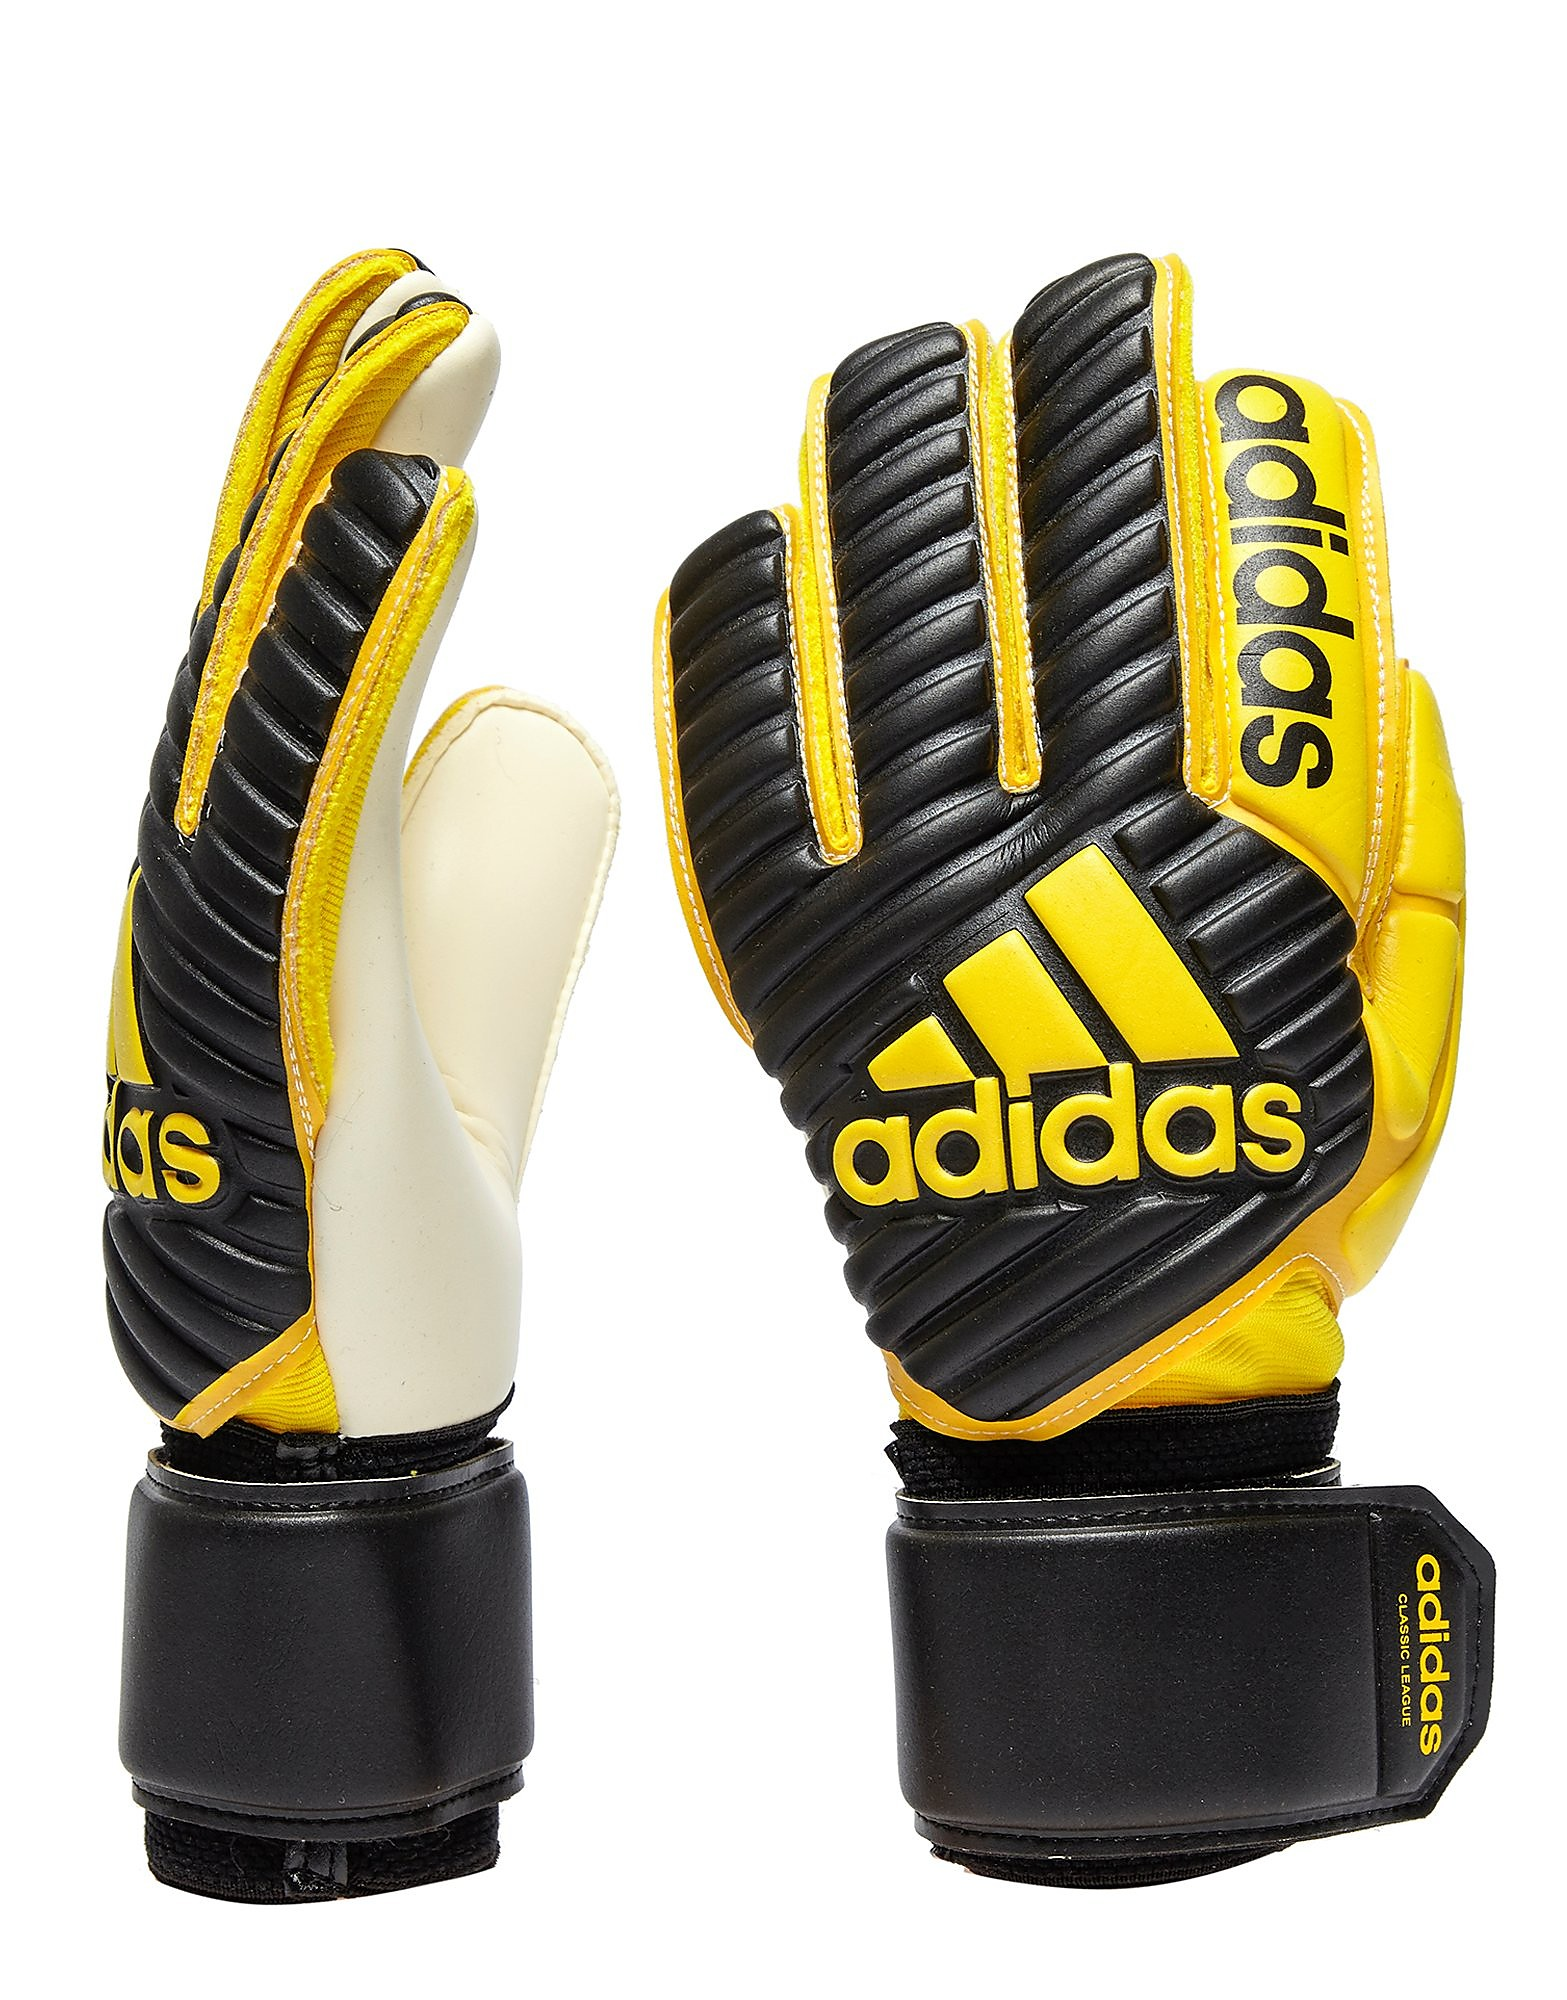 adidas Classic League Goalkeeper Gloves